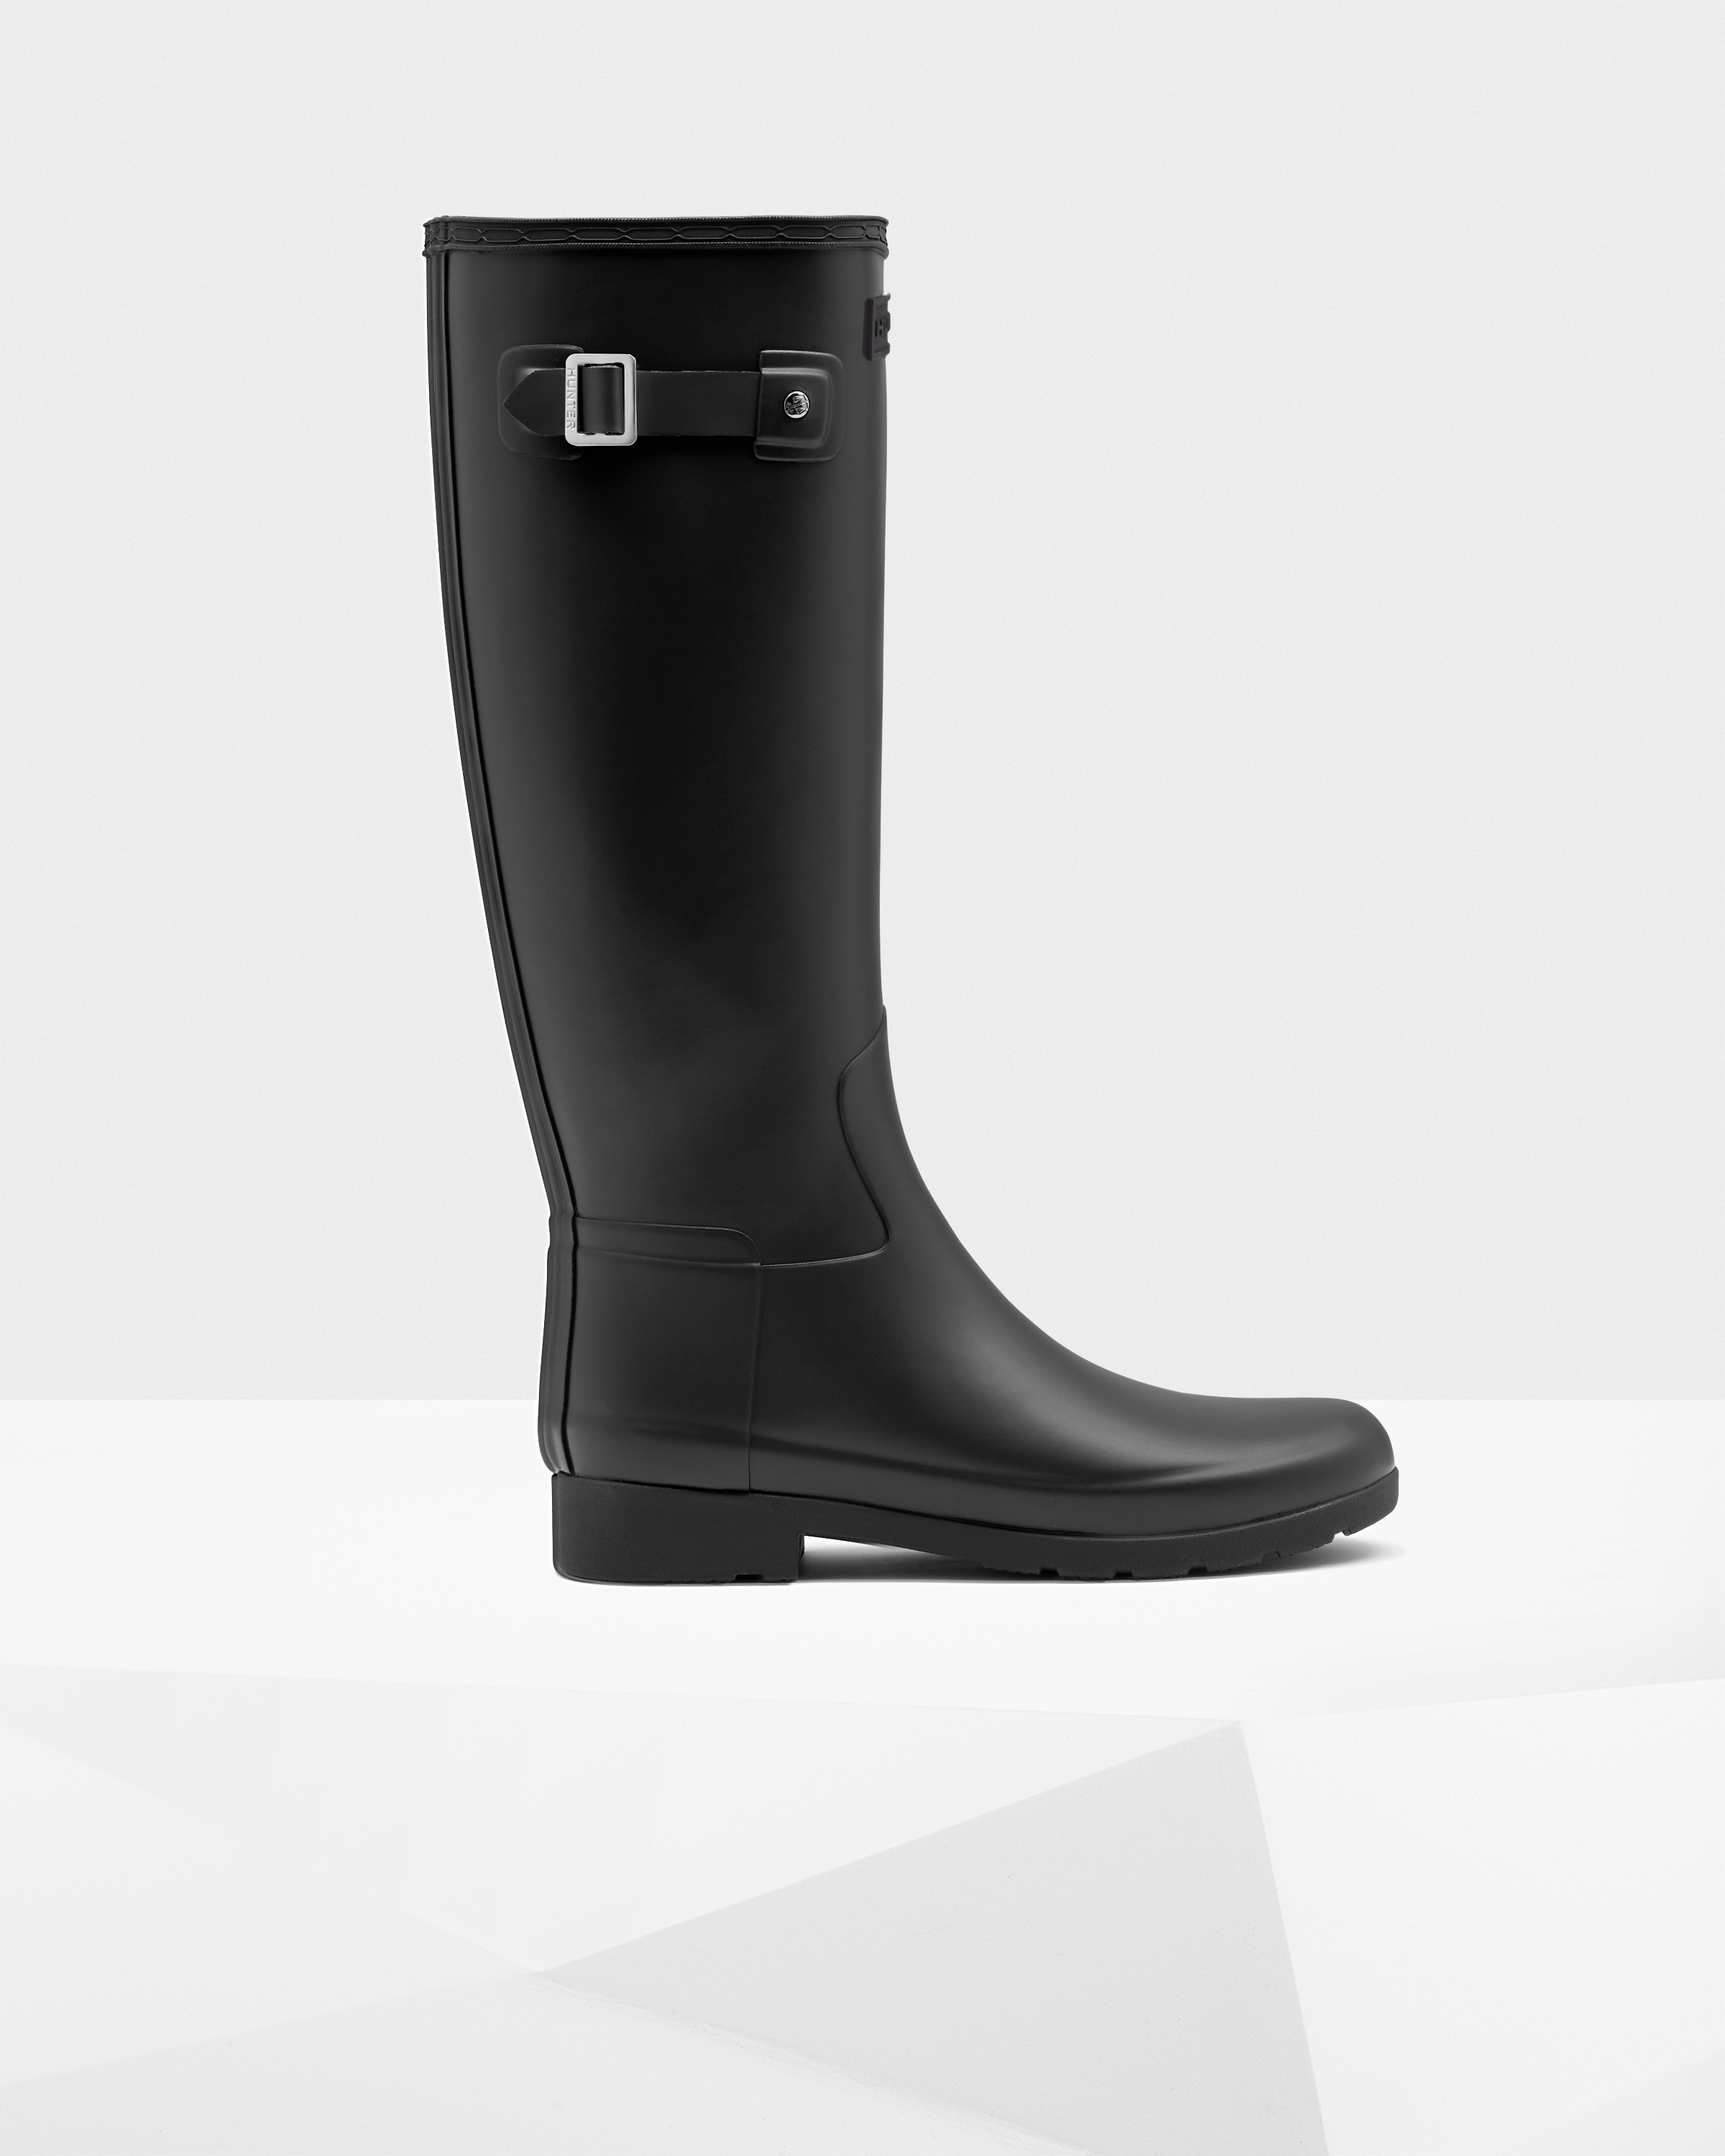 c91bdafed Womens Black Women's Refined Slim Fit Tall Rain Boots | Official Hunter  Boots Store